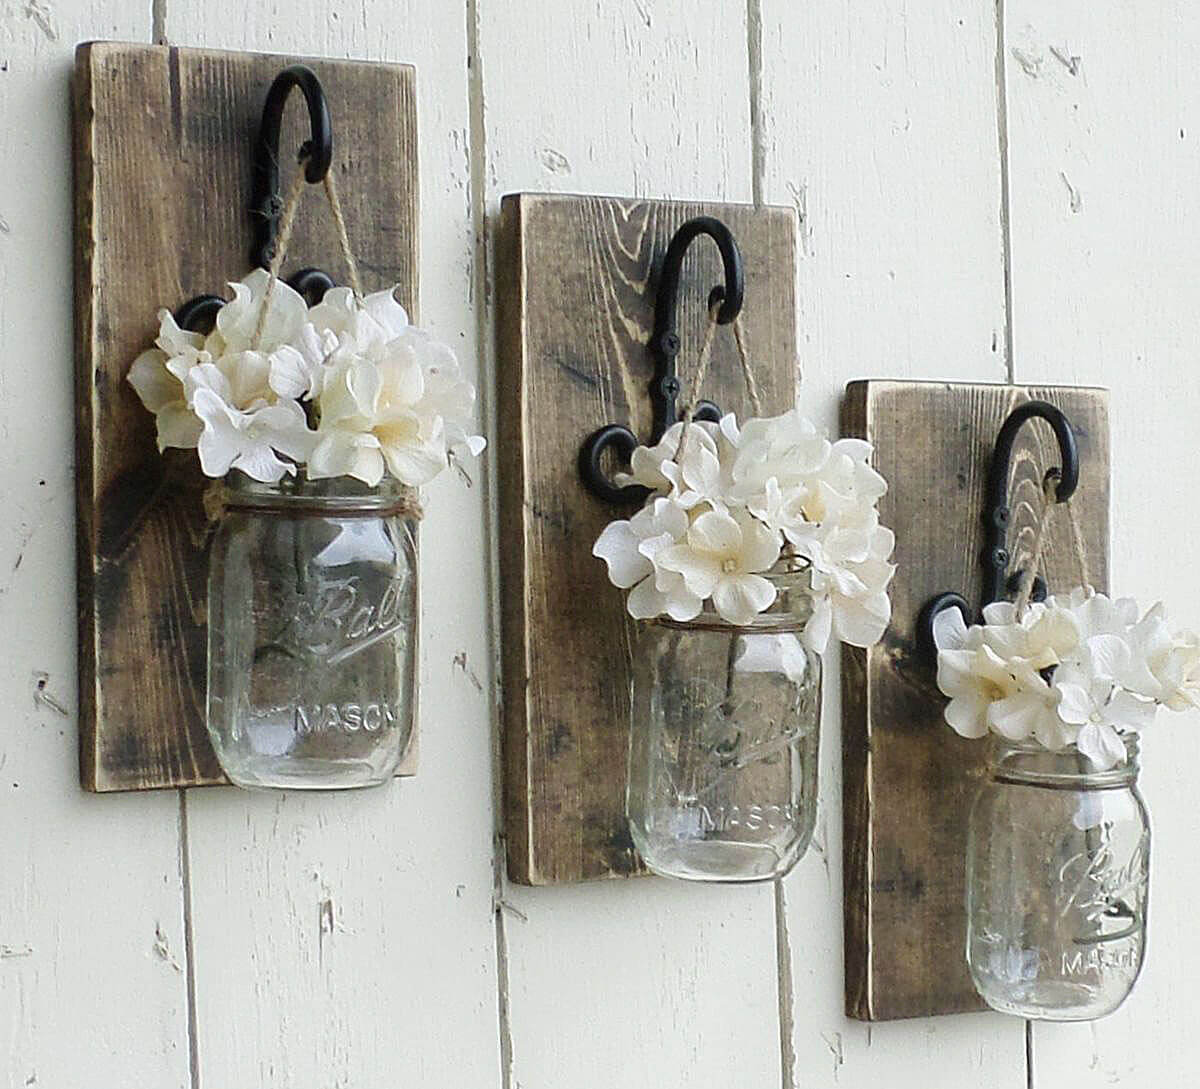 Attirant 3. Hanging Mason Jars Filled With Flowers